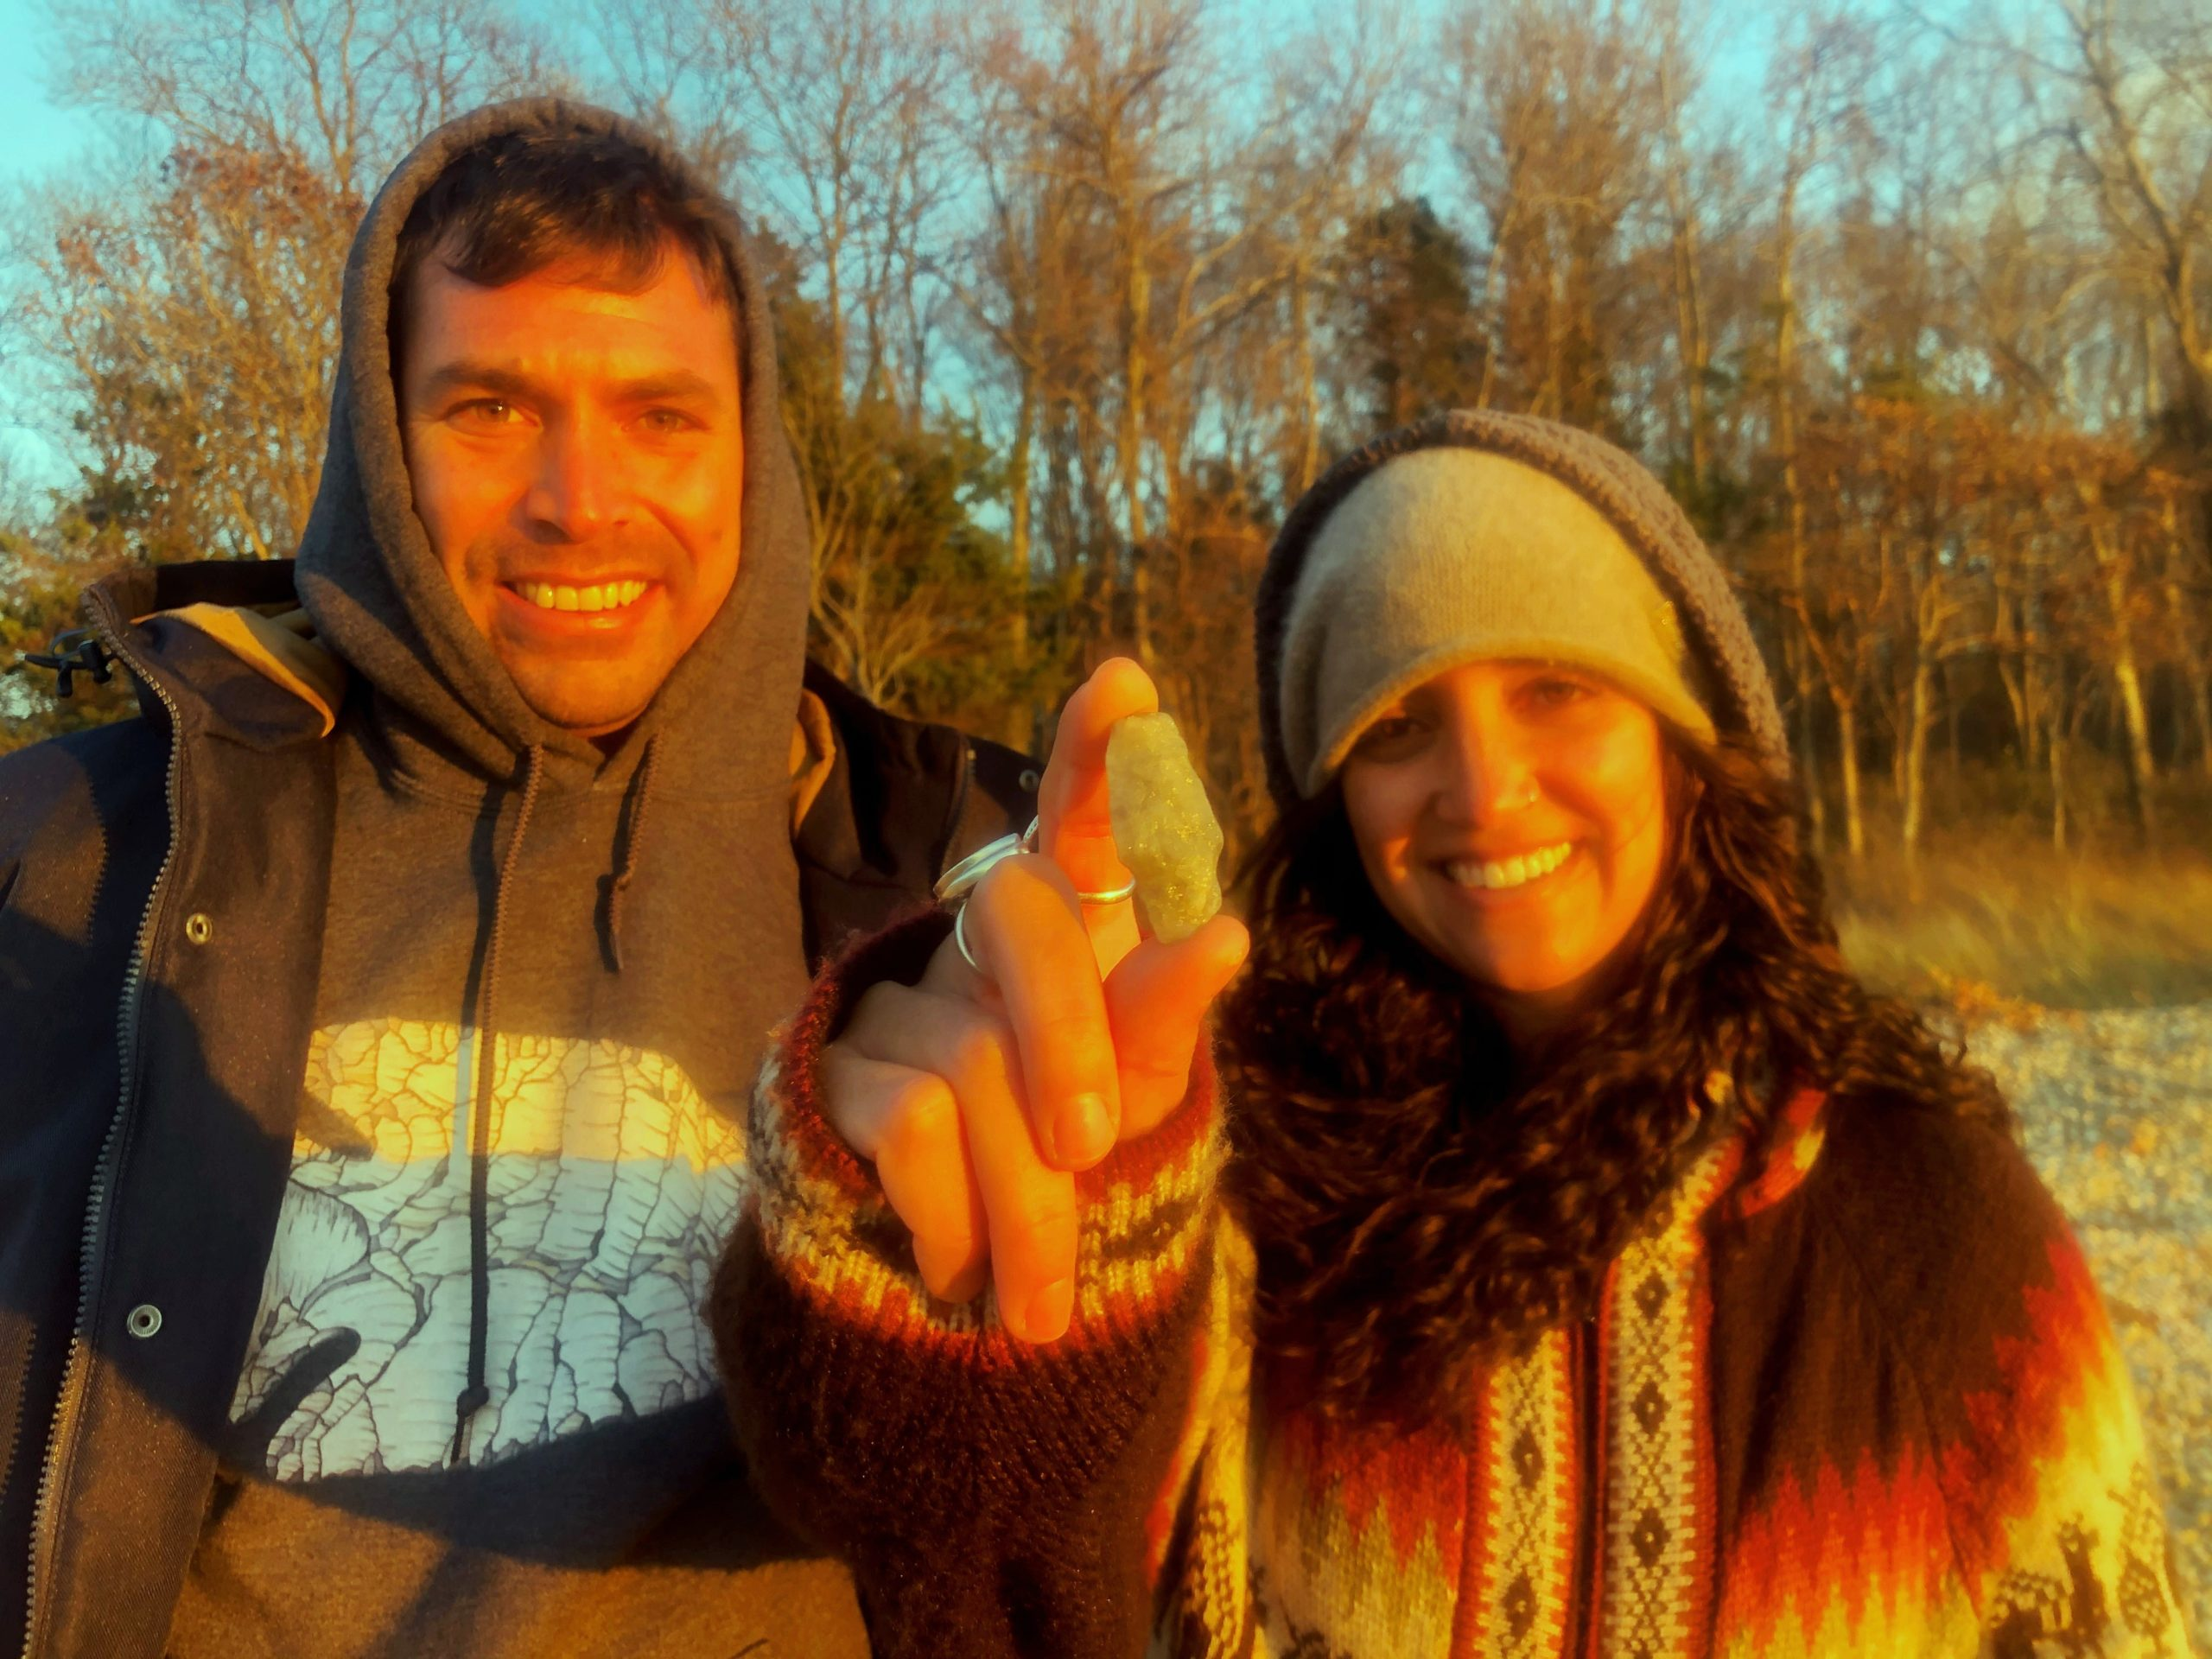 Laura Mayo shows off the ancient arrowhead she found on a local beach recently while hunting for artifacts with Orson Frisbee.